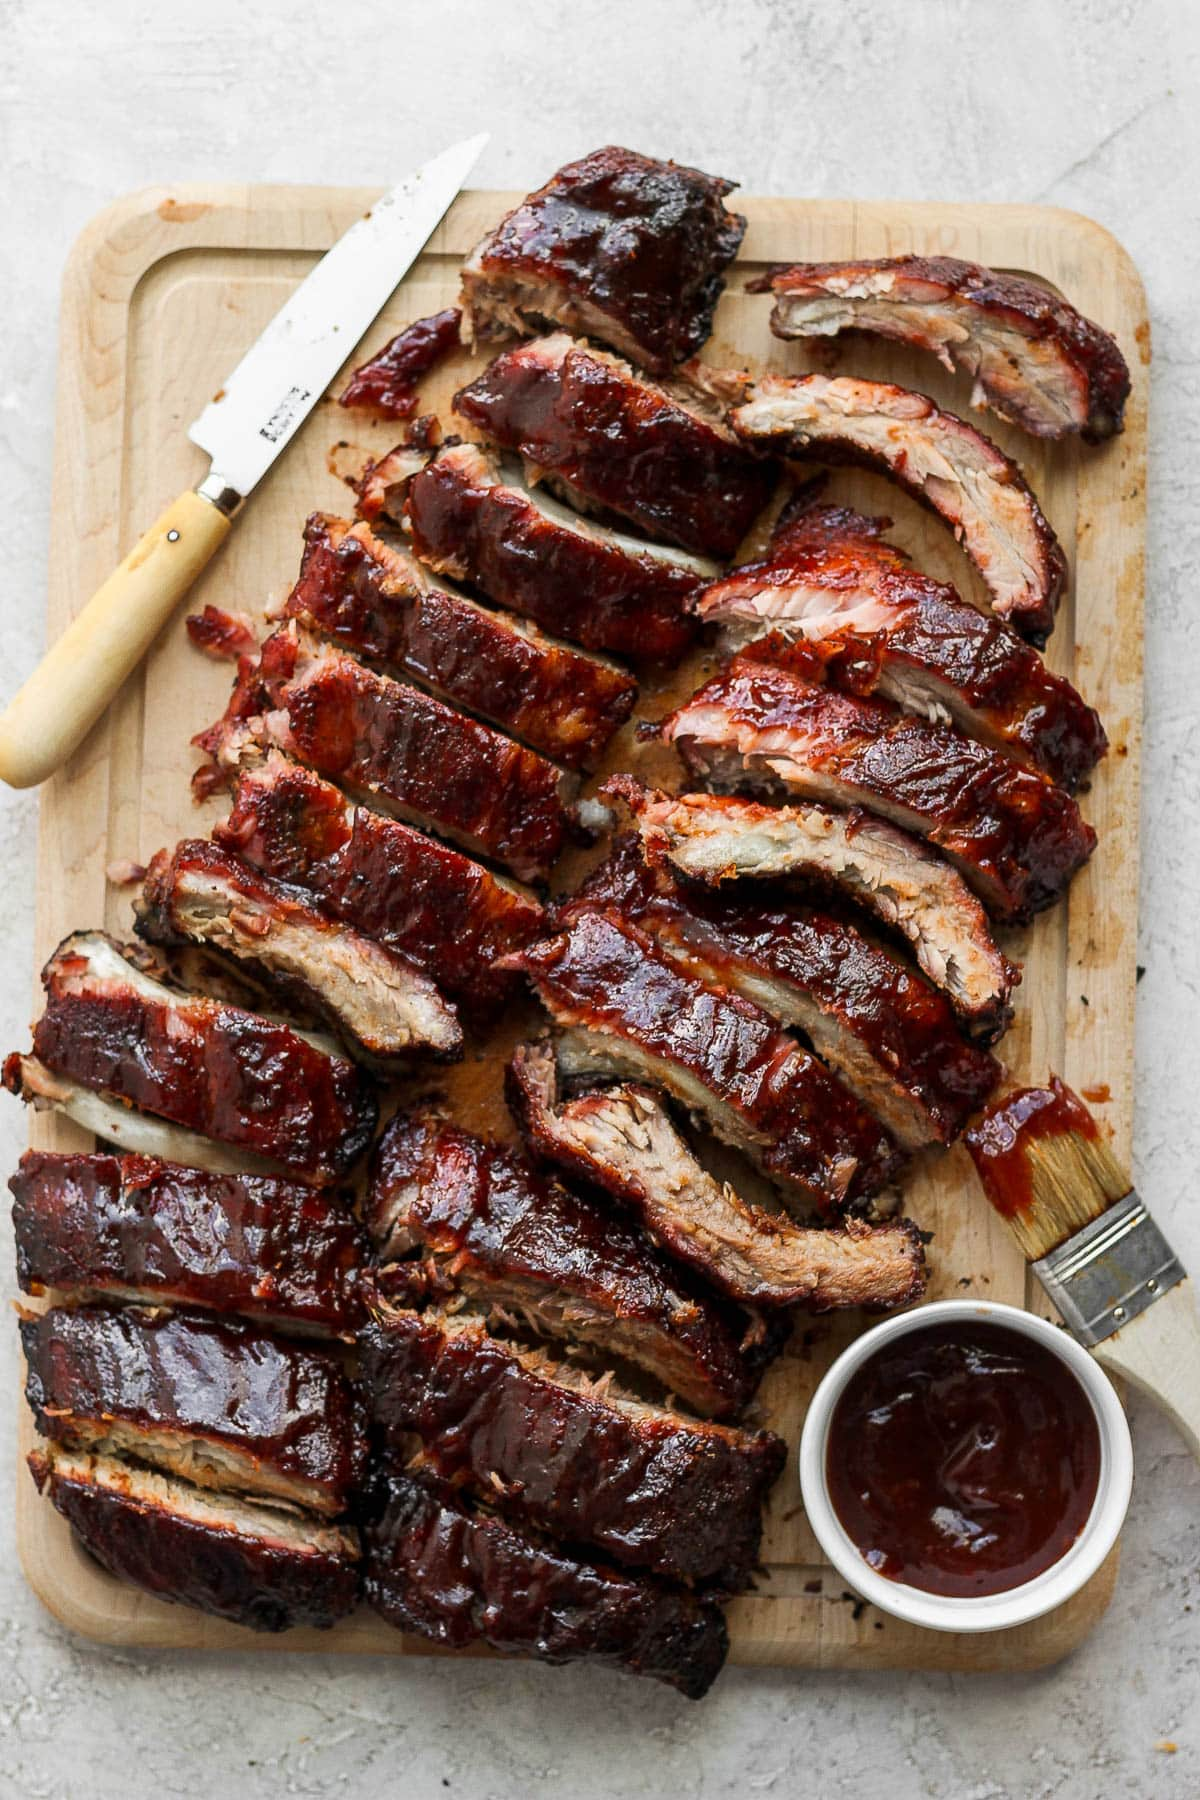 A wooden cutting board with two racks of smoked ribs sitting on top.